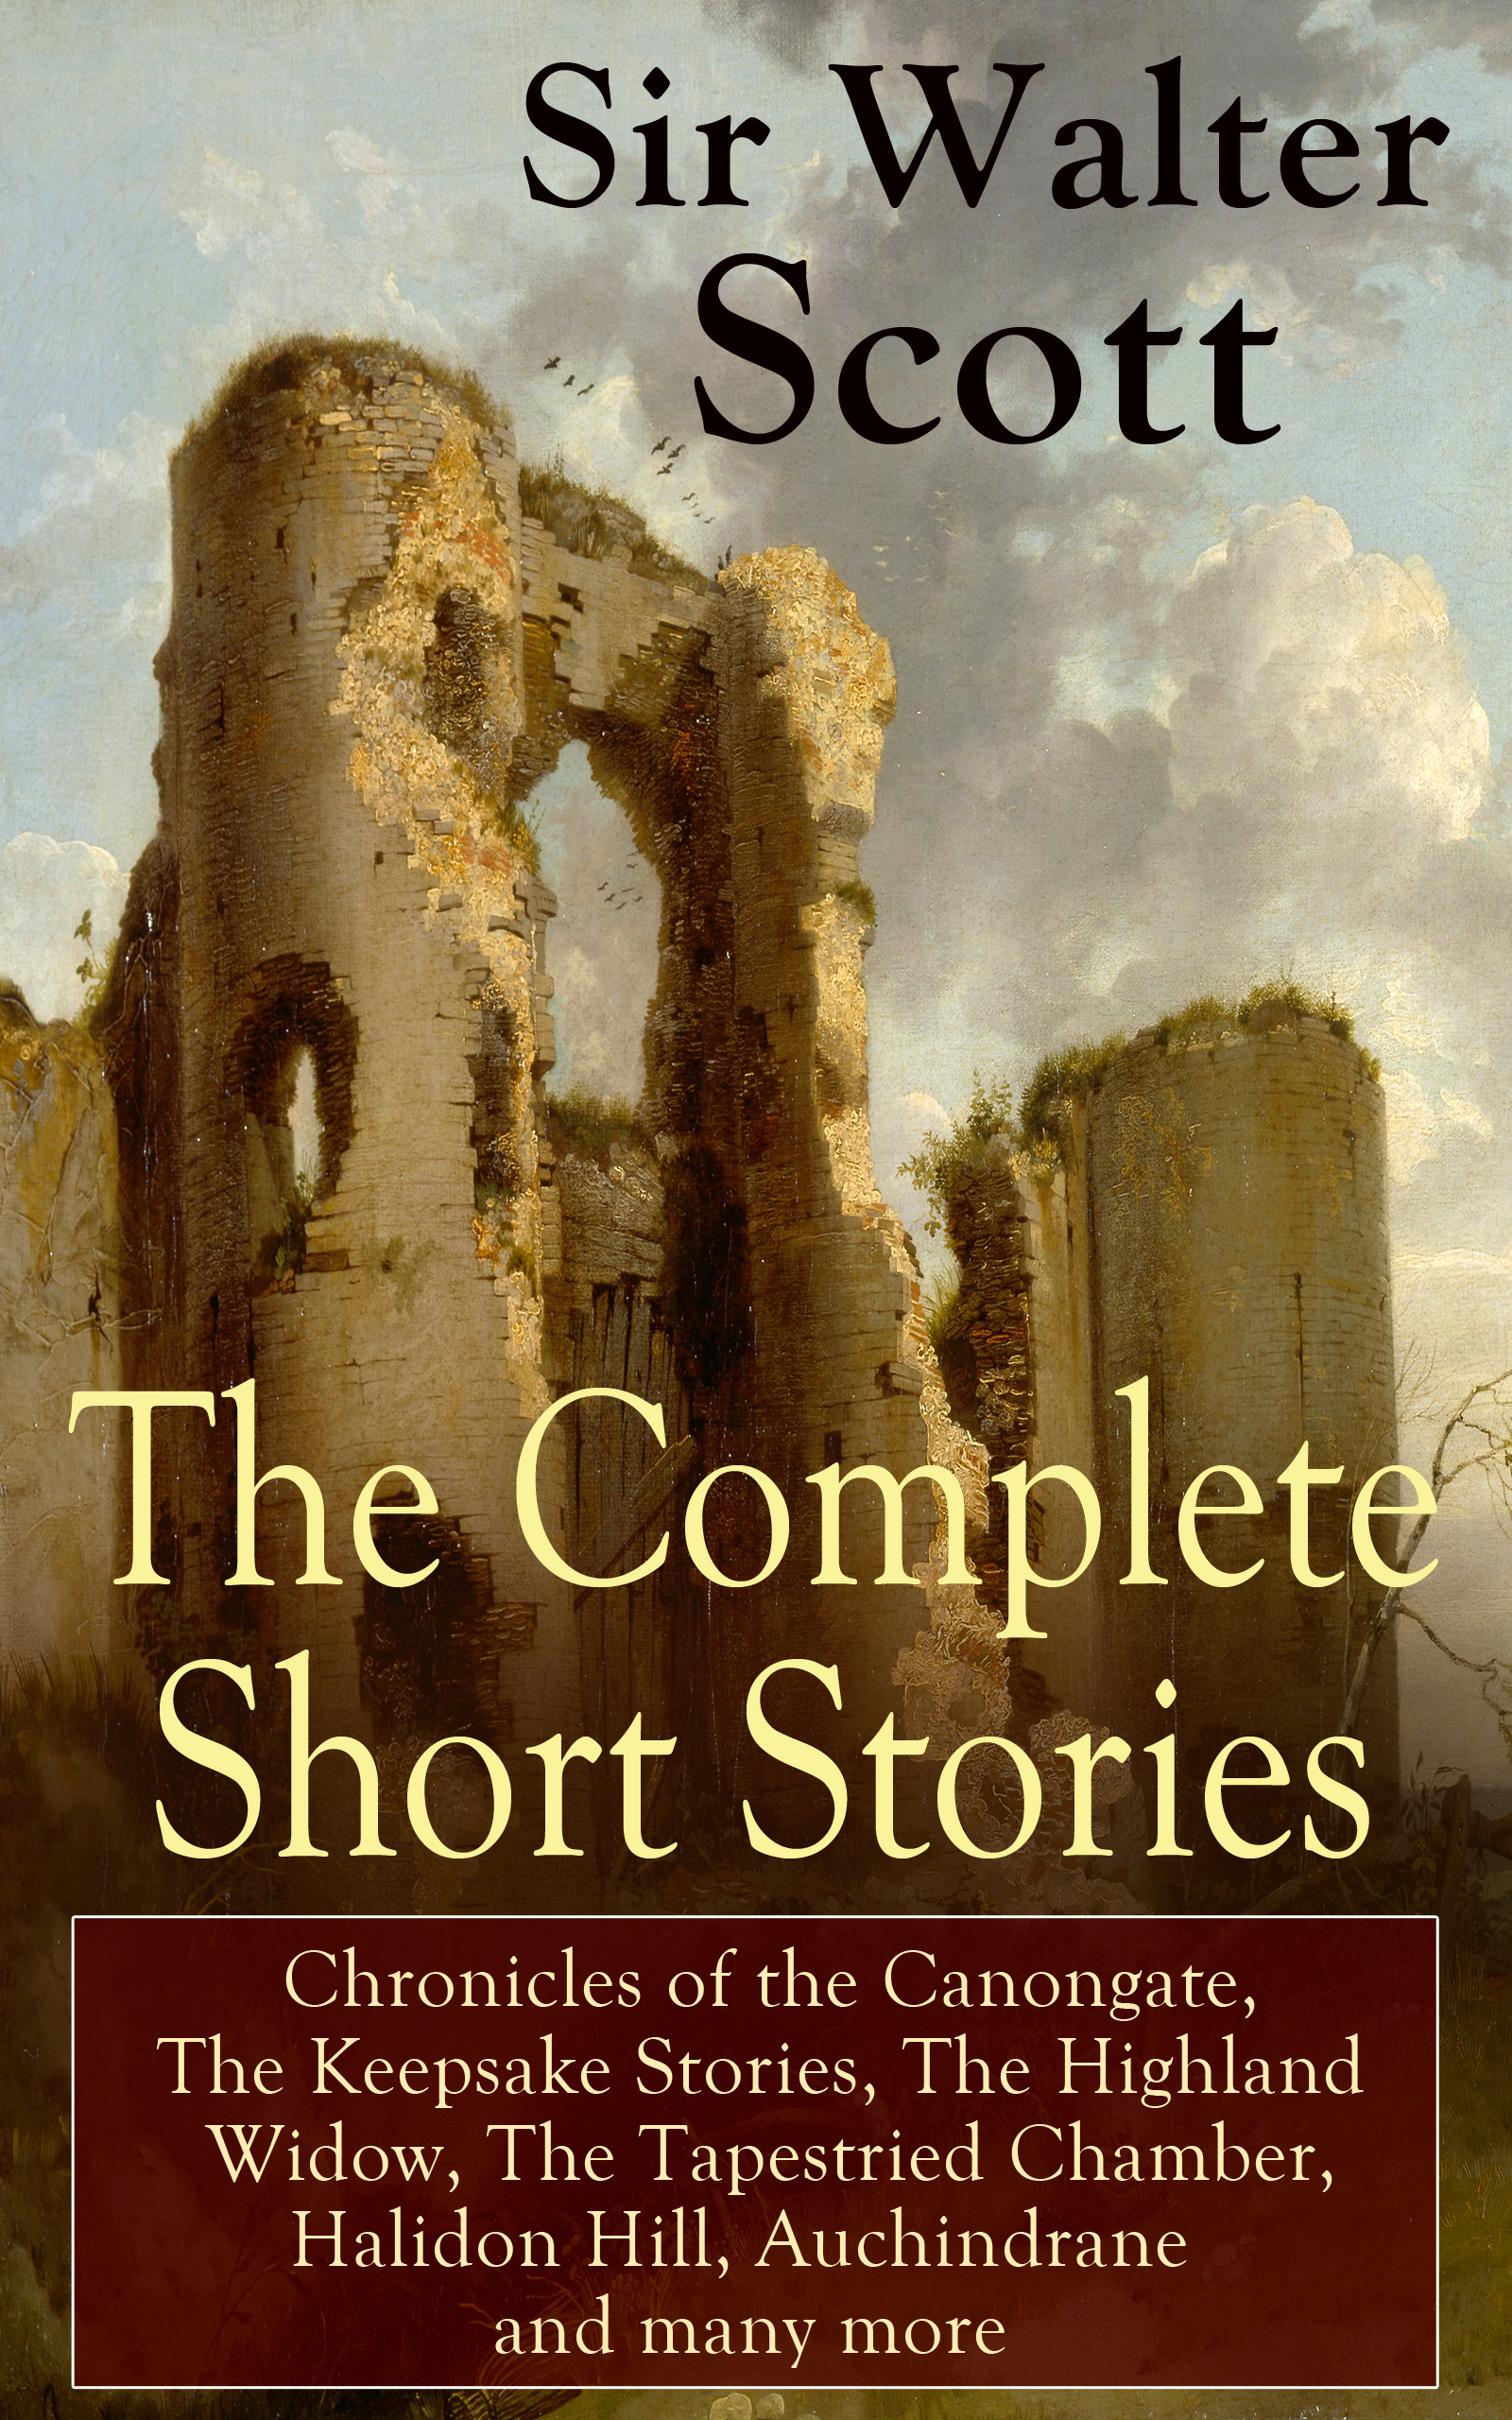 Walter Scott The Complete Short Stories of Sir Walter Scott: Chronicles of the Canongate, The Keepsake Stories, The Highland Widow, The Tapestried Chamber, Halidon Hill, Auchindrane and many more цена и фото